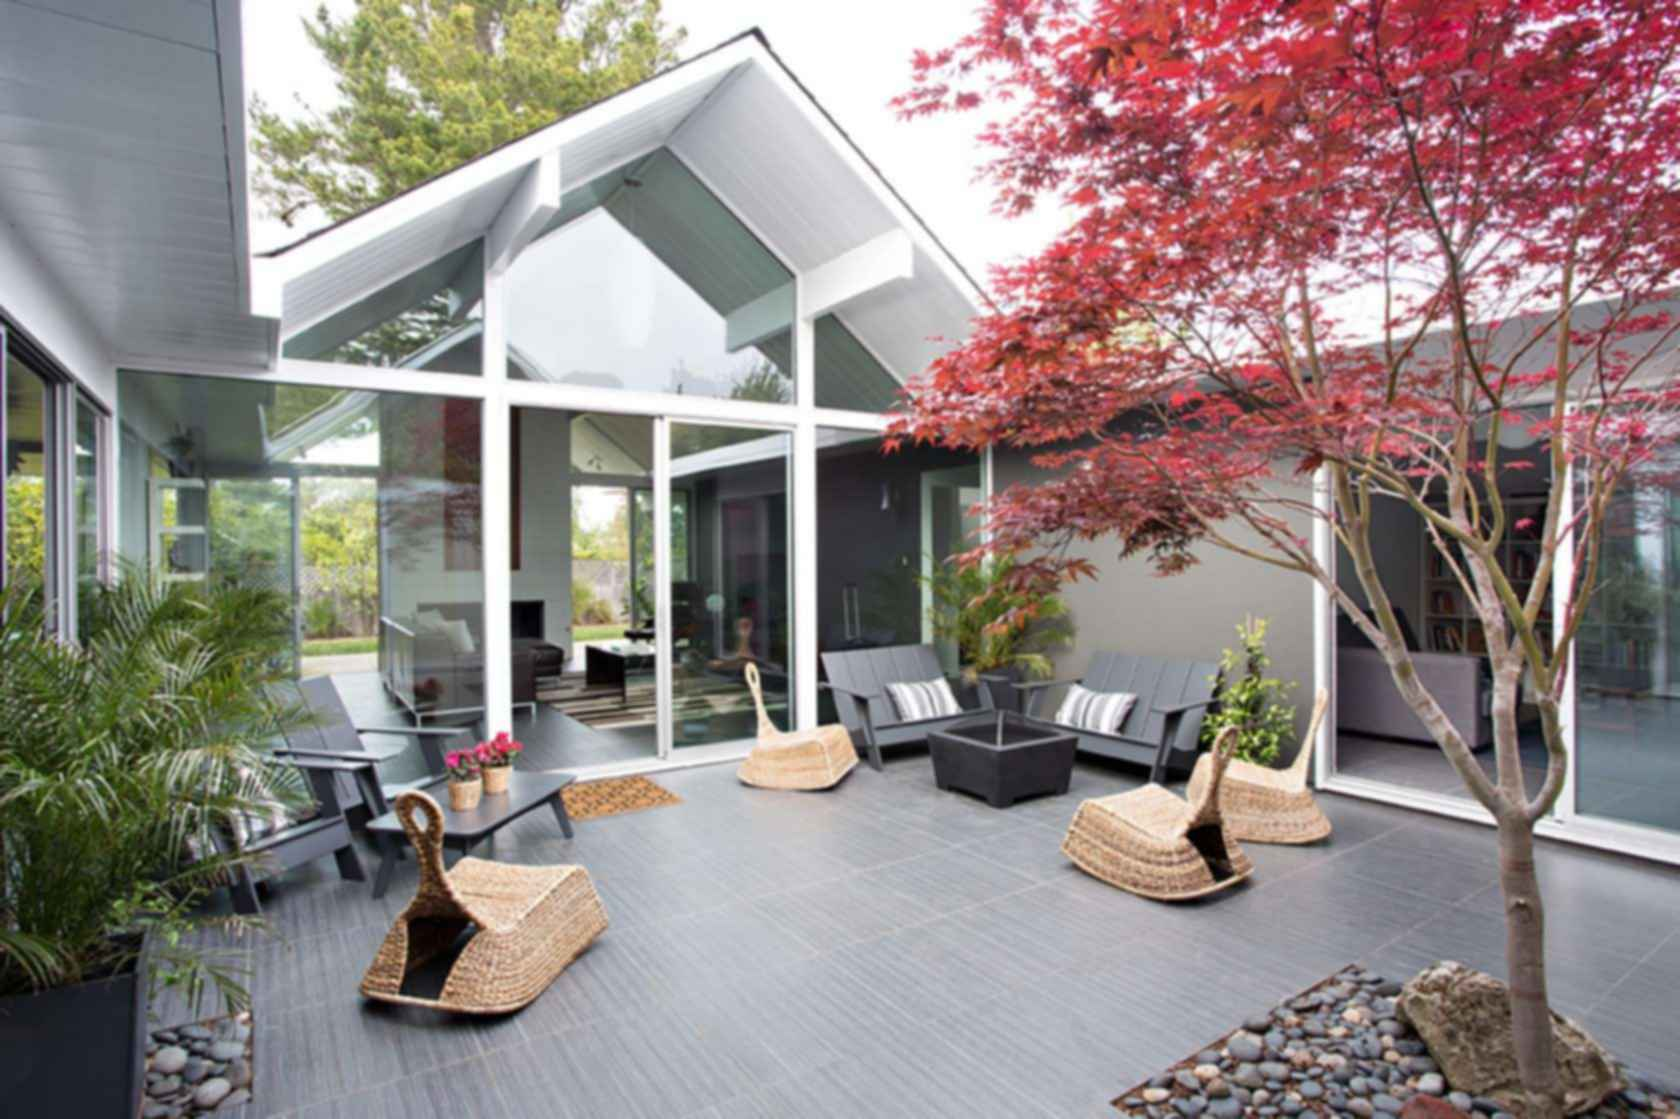 Double Gable Eichler Remodel - Exterior/Outdoor Area